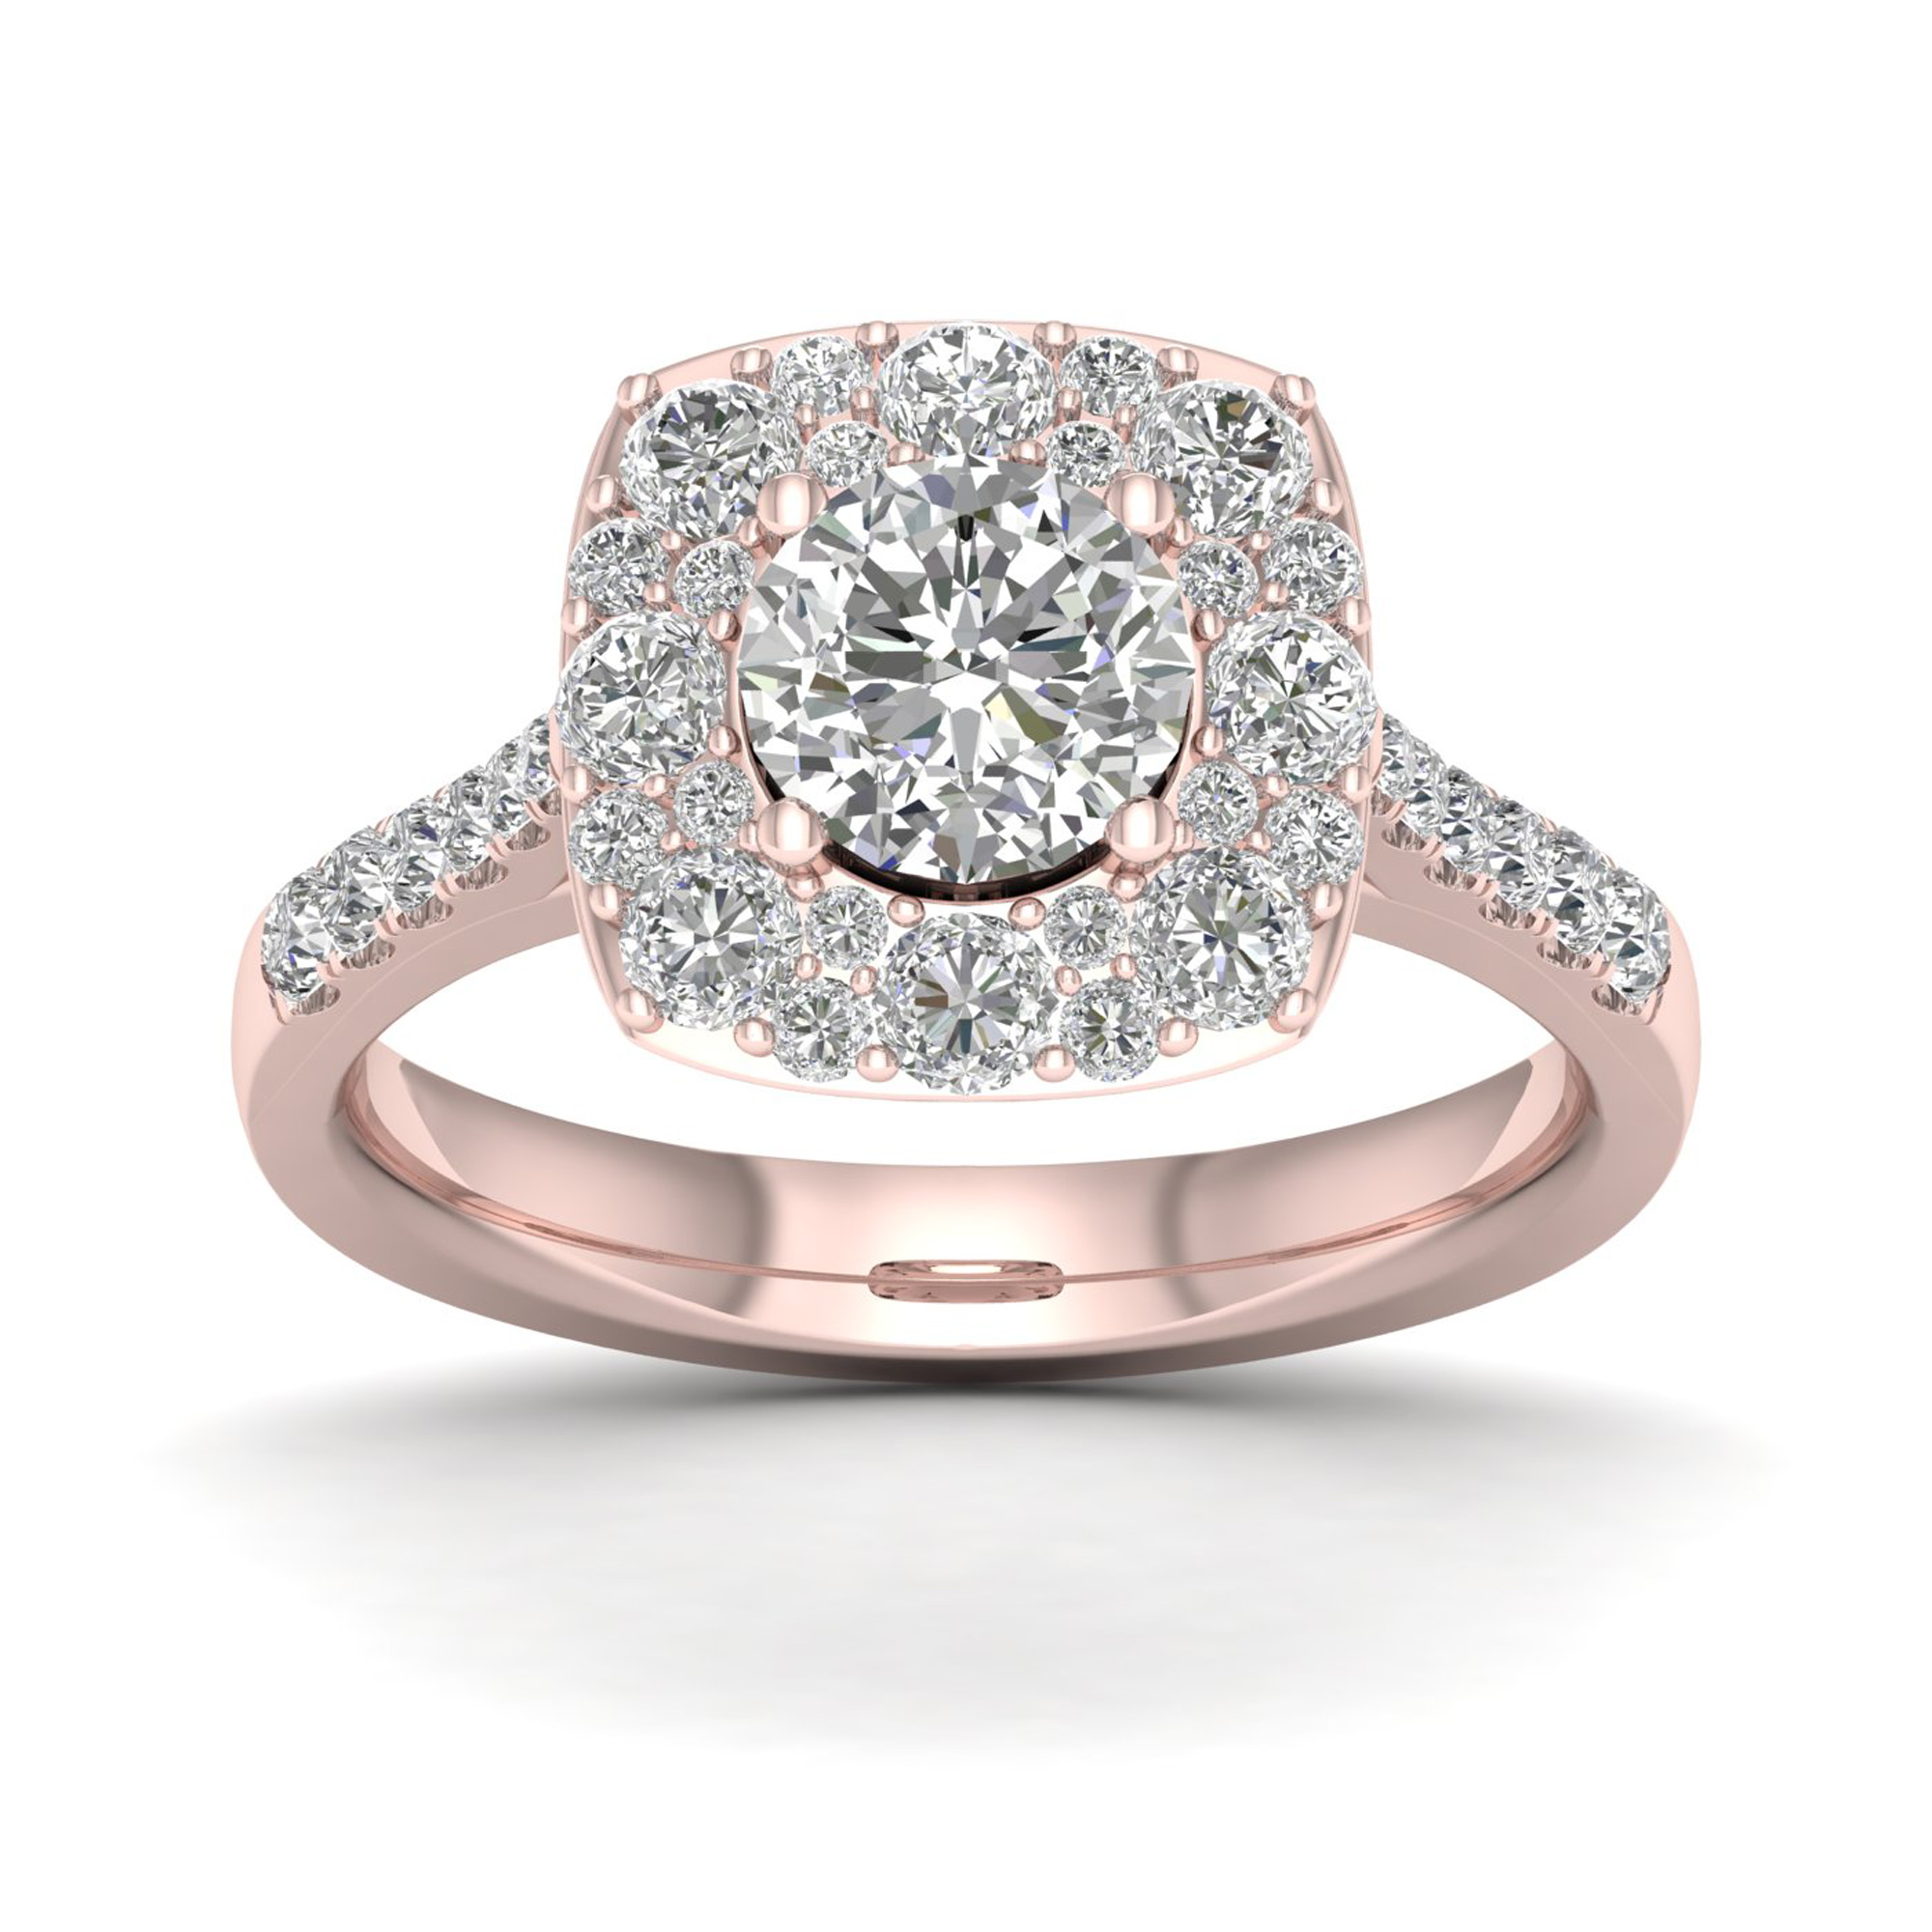 Imperial 1 3 4Ct TDW Diamond 14k Rose Gold Halo Engagement Ring by Imperial Jewels